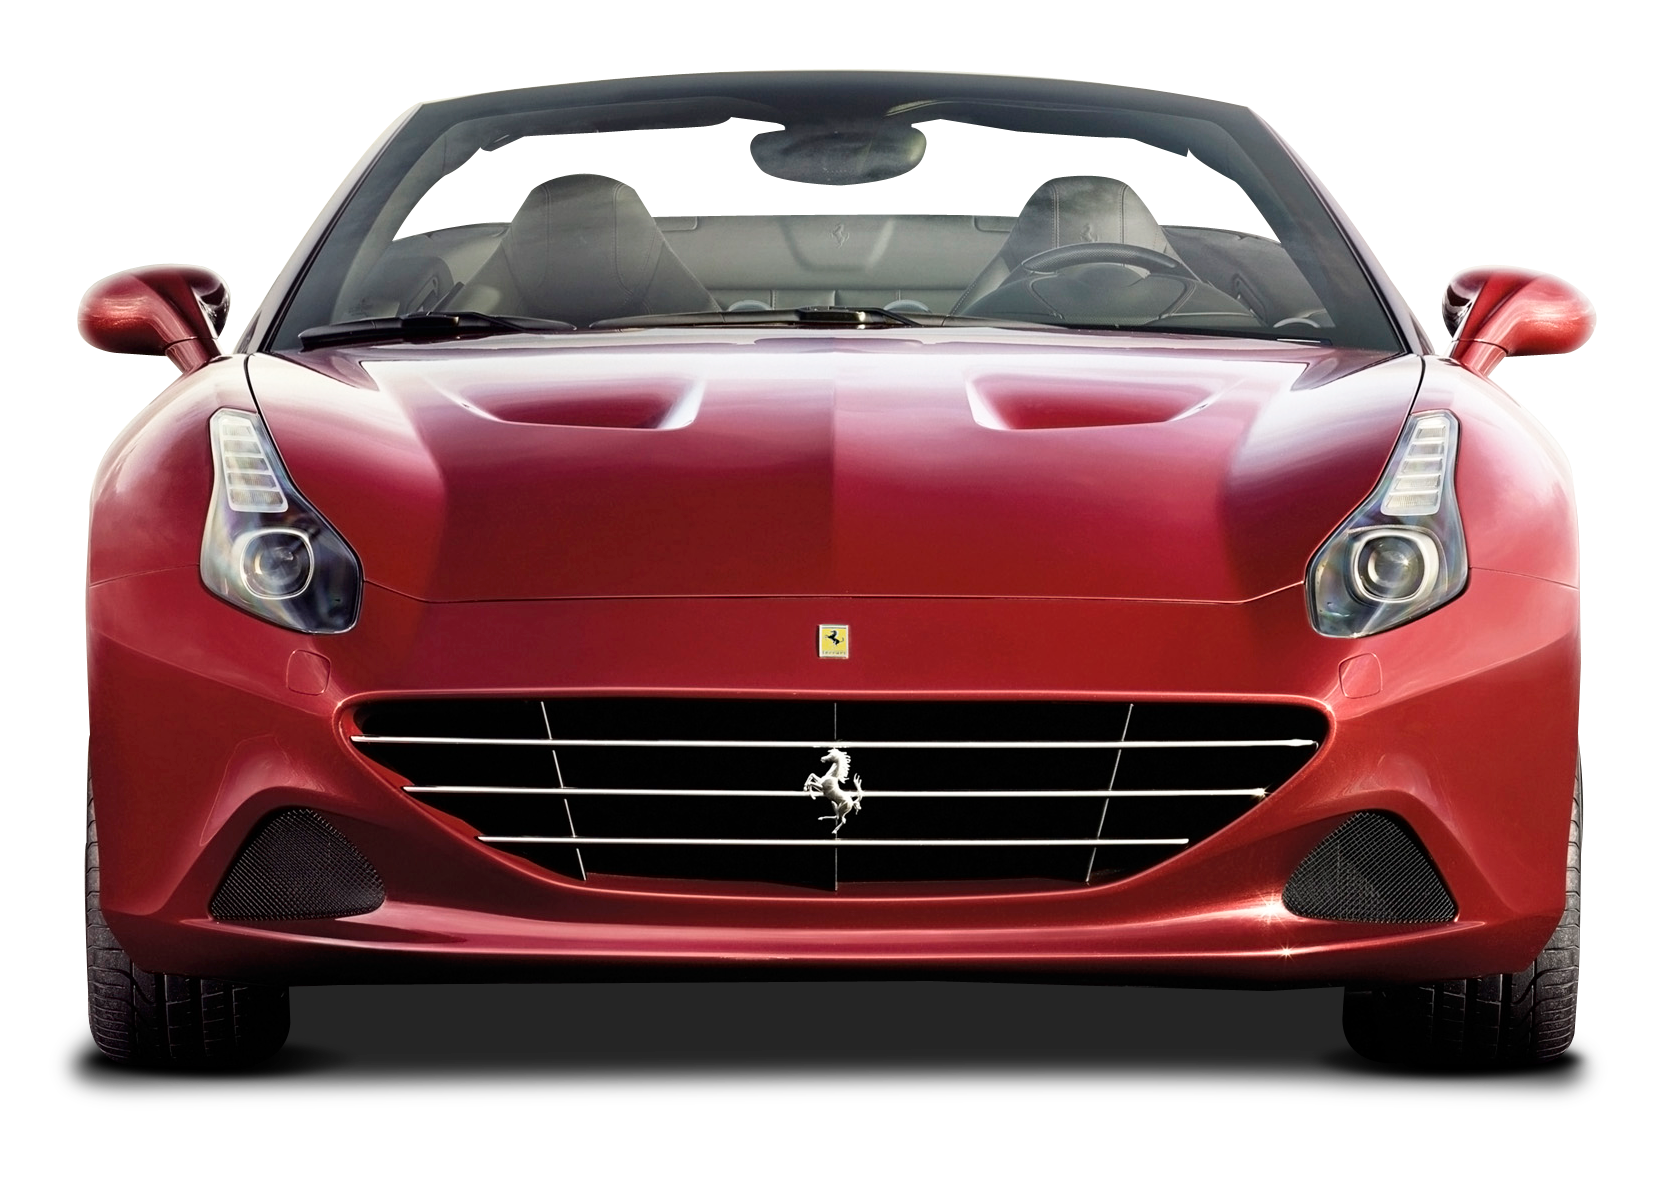 Car png images free. Clipart cars transparent background